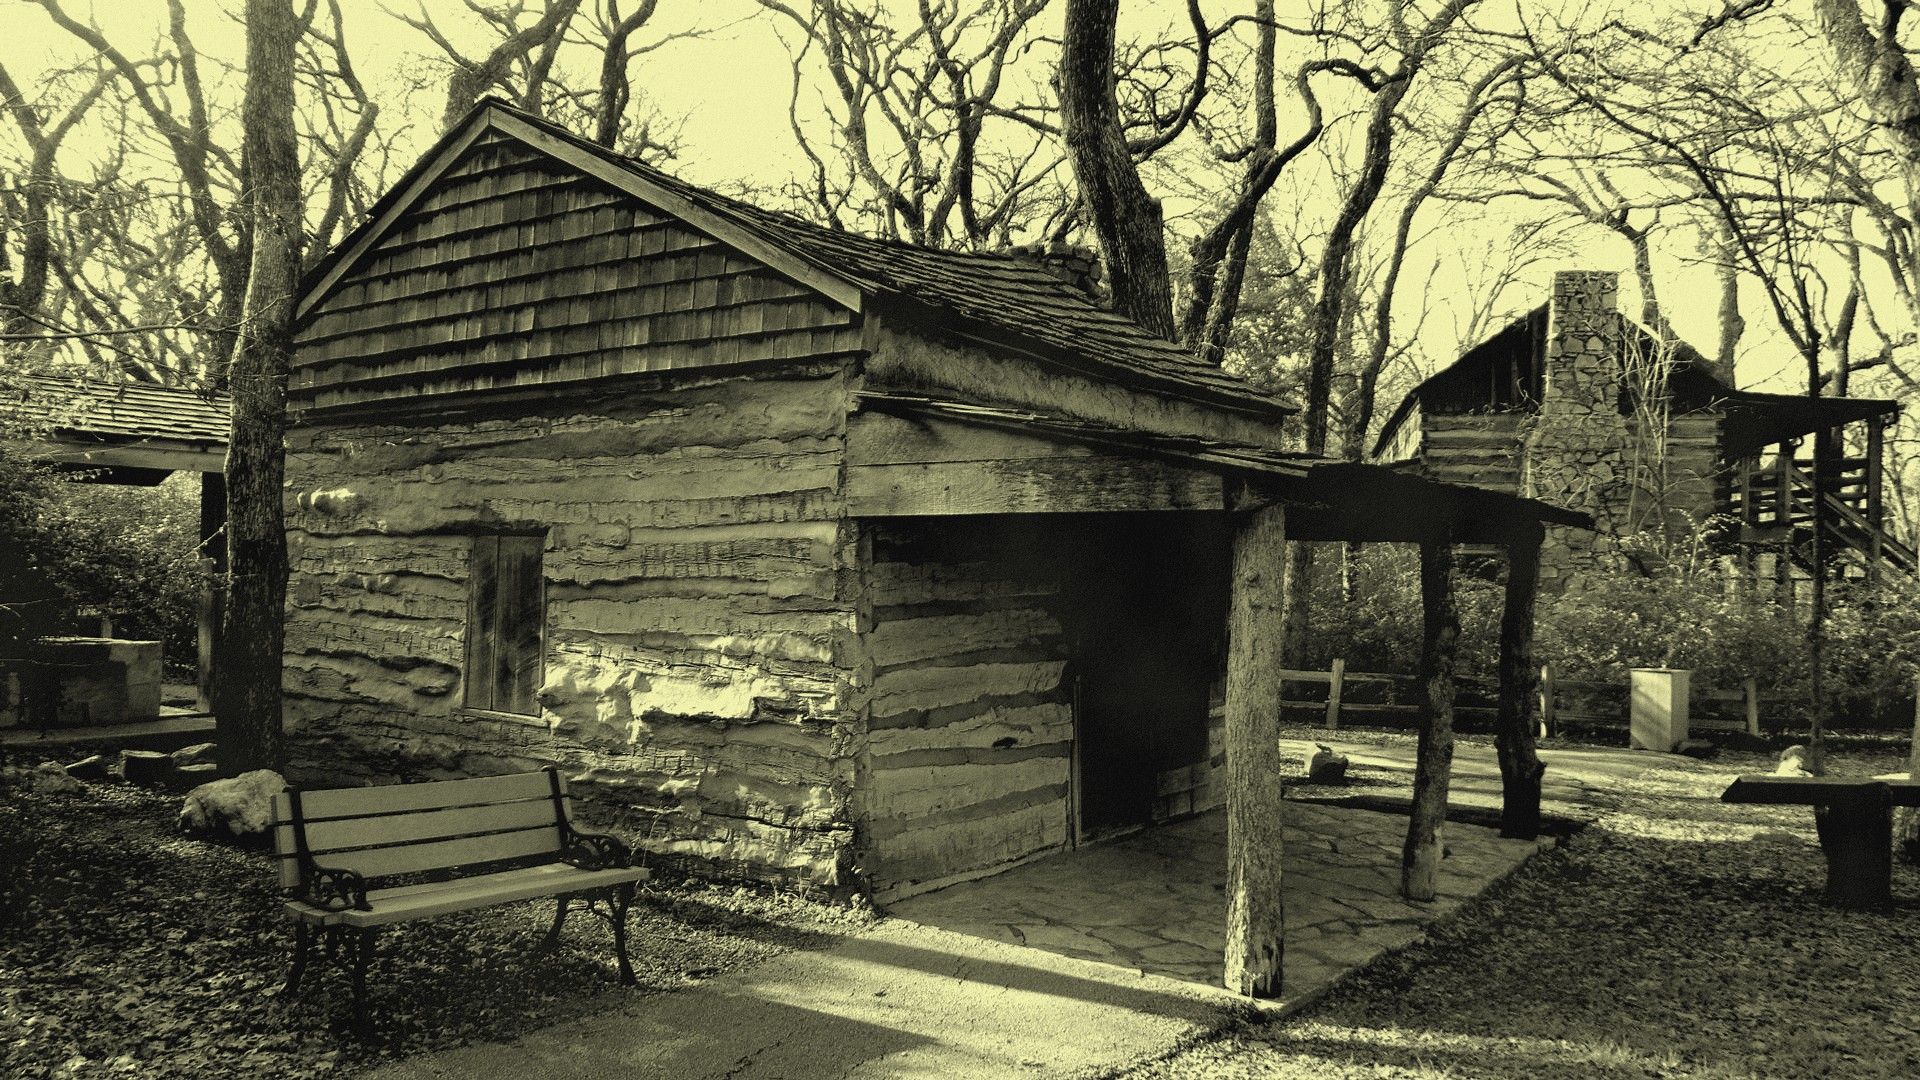 Wonderful image of Log Cabin Village Things to Do in Dallas With Kids with #B3B318 color and 1920x1080 pixels